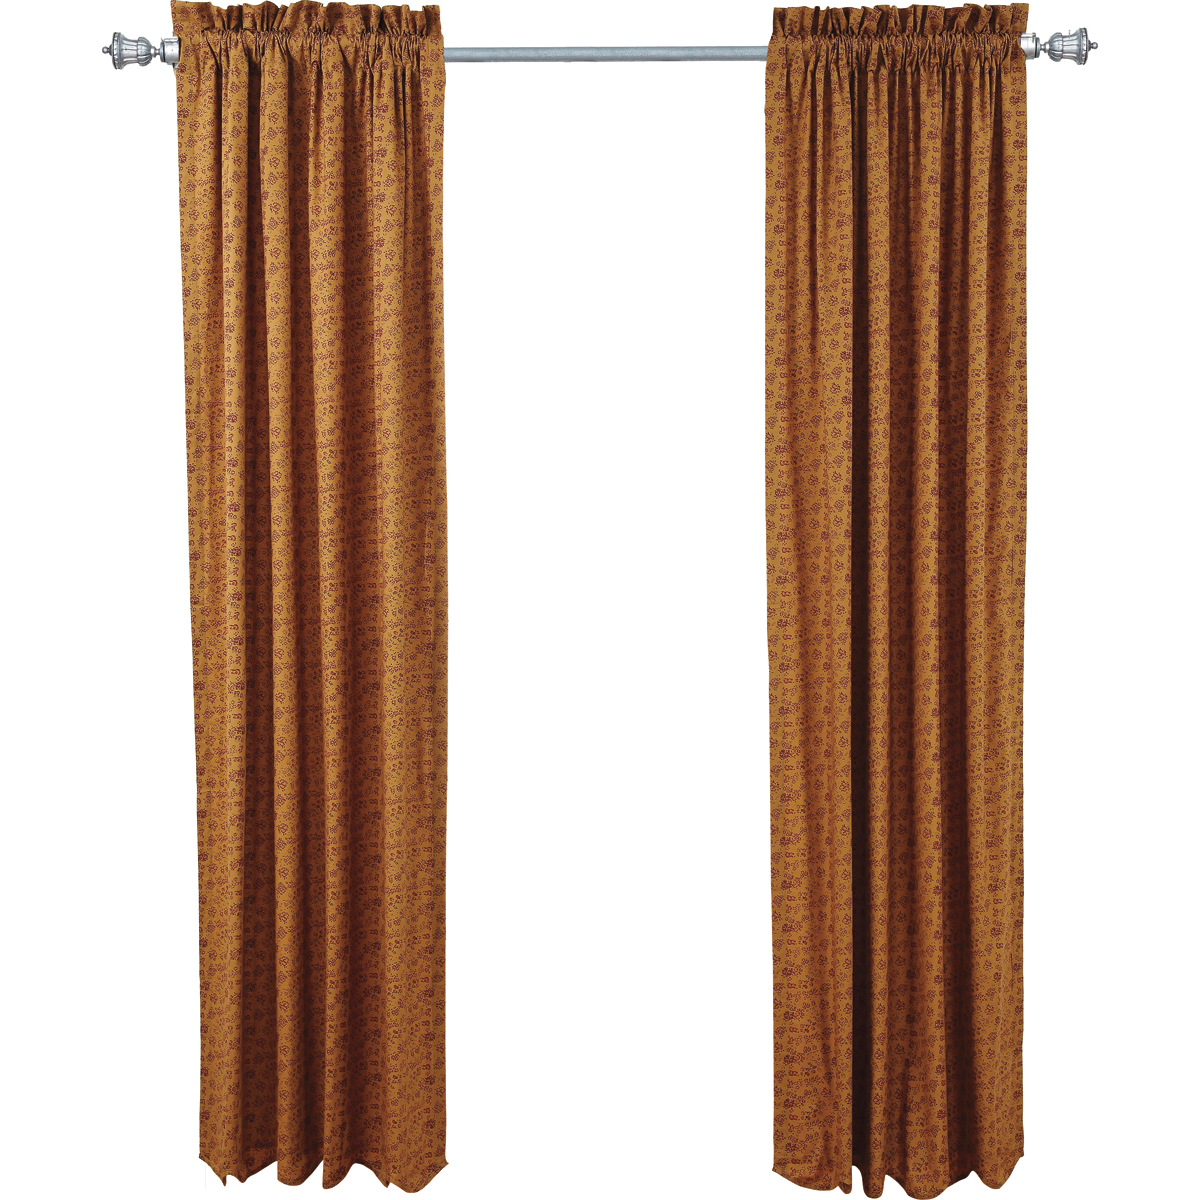 VHC Brands Lewiston Curtain Panels (Set of 2)